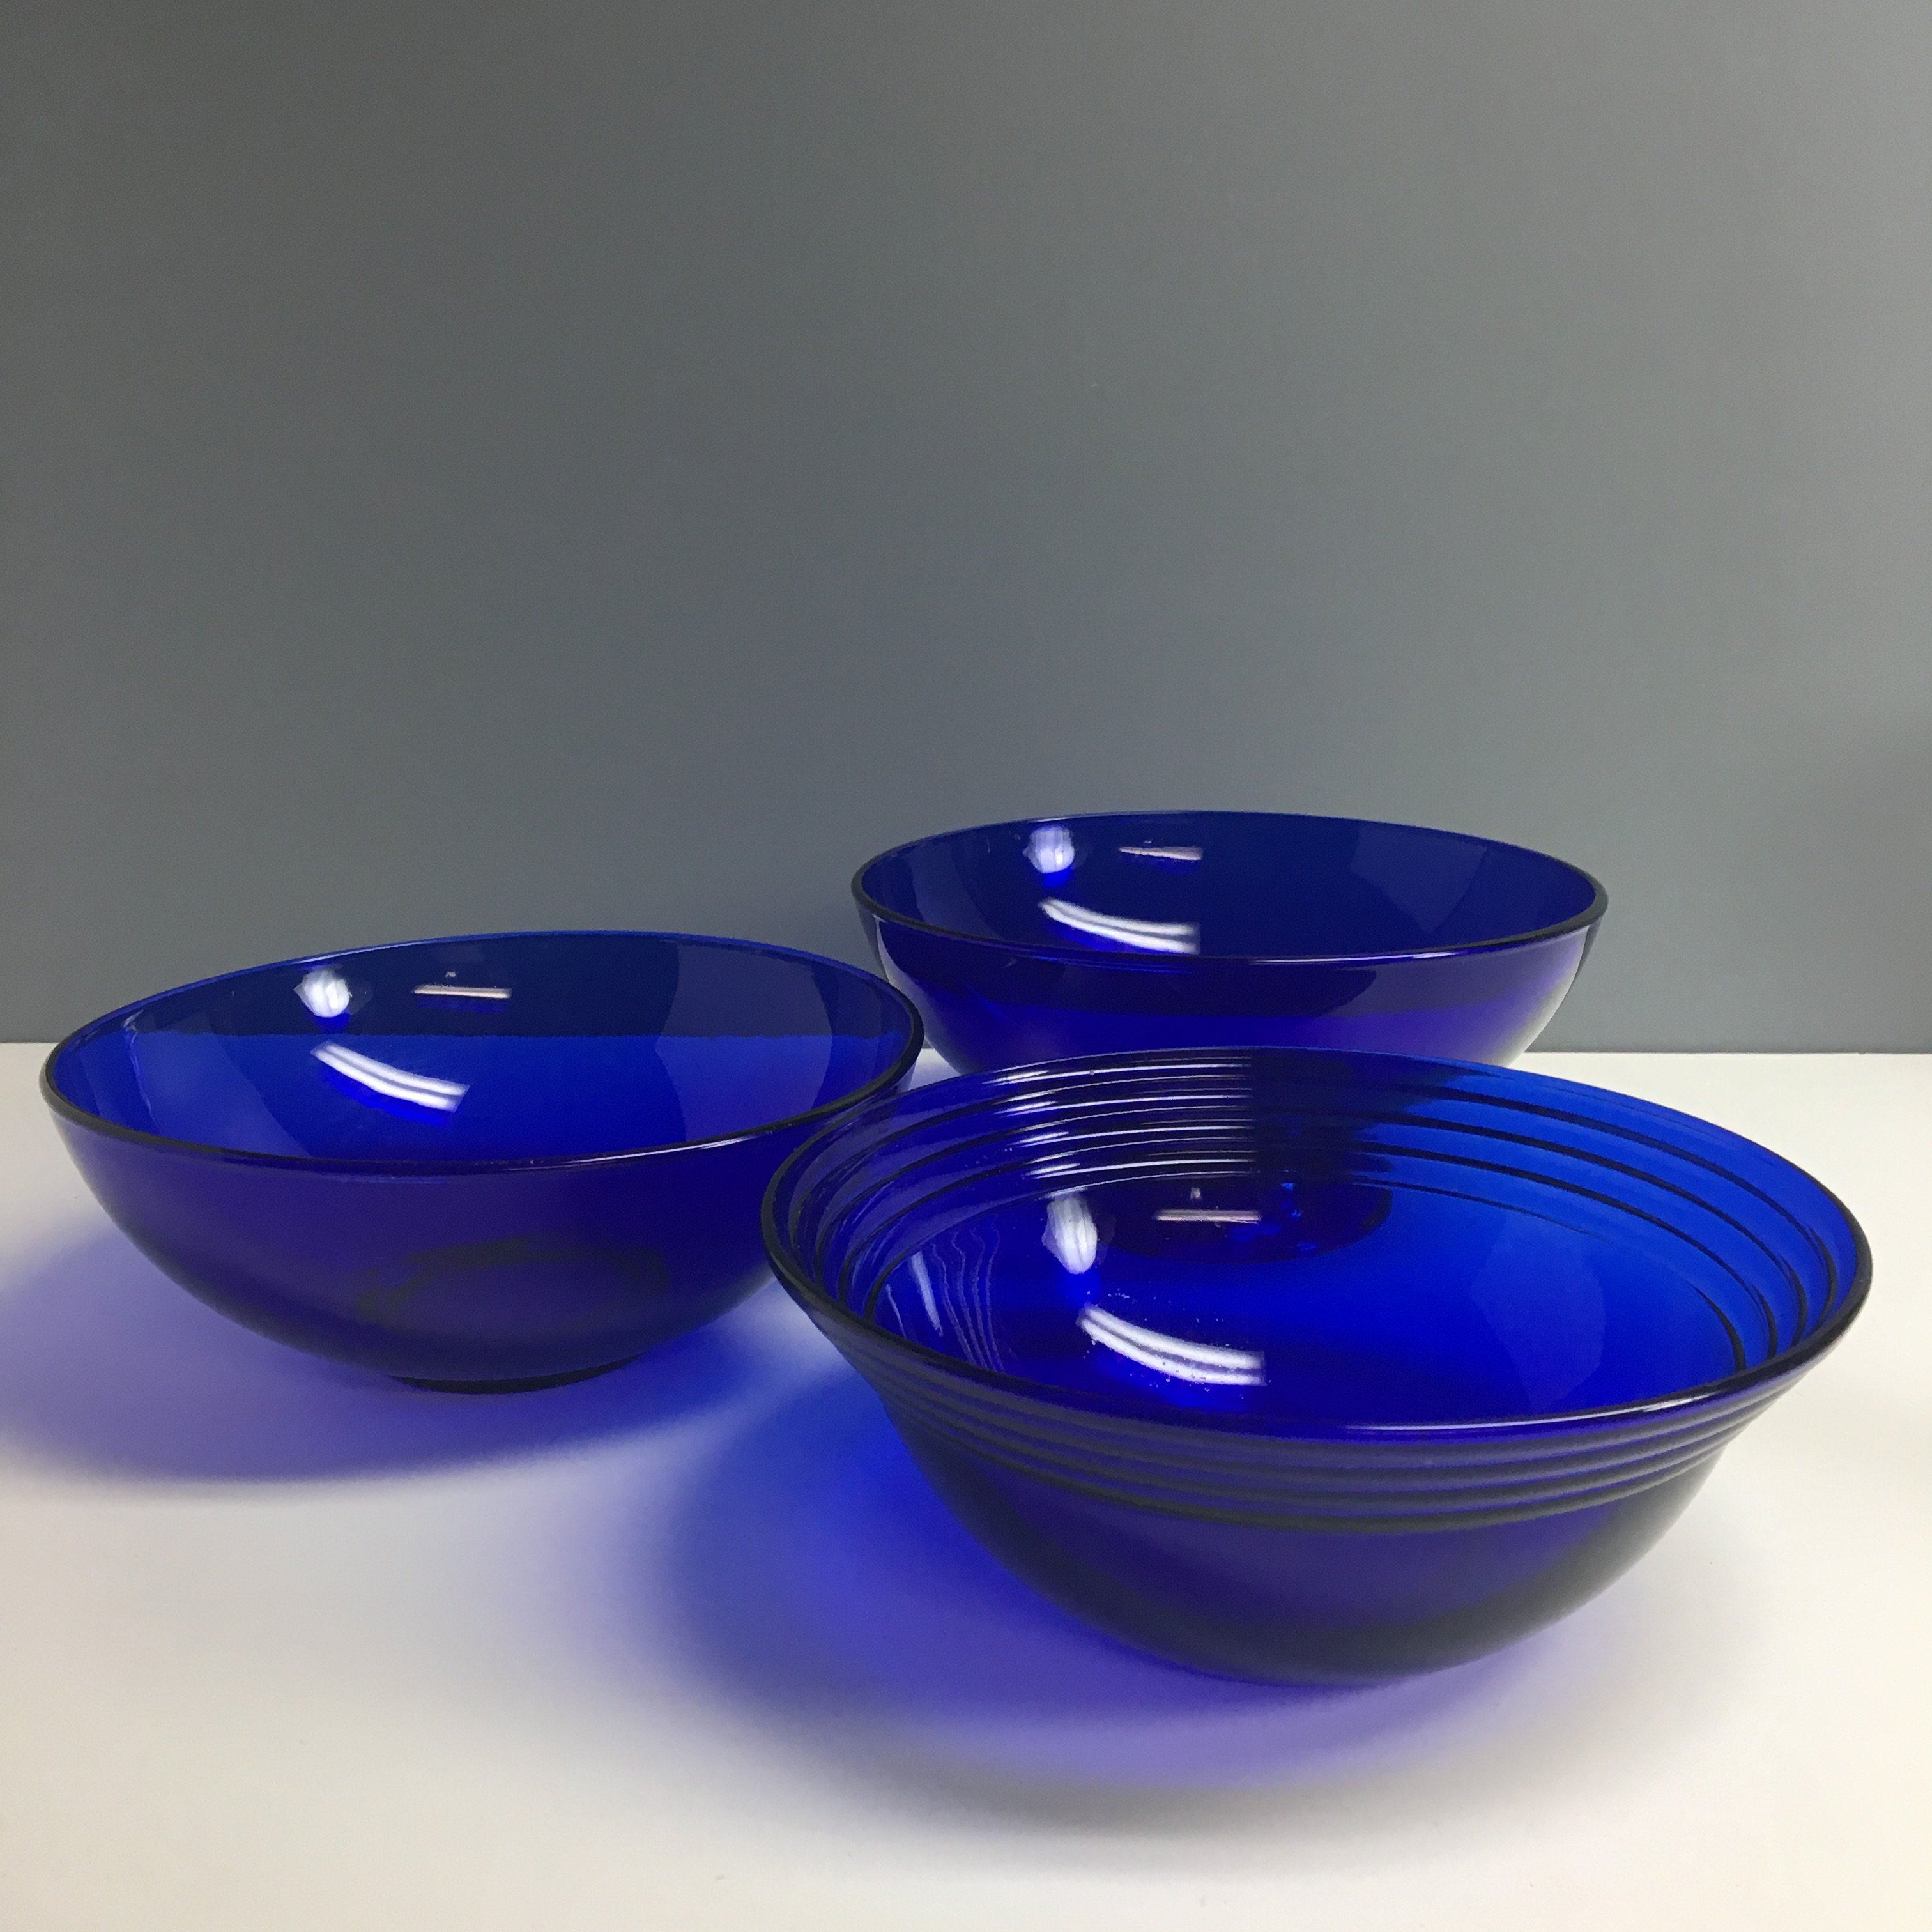 Three Vintage Cobalt Blue Serving Bowls For Mix And Match Display